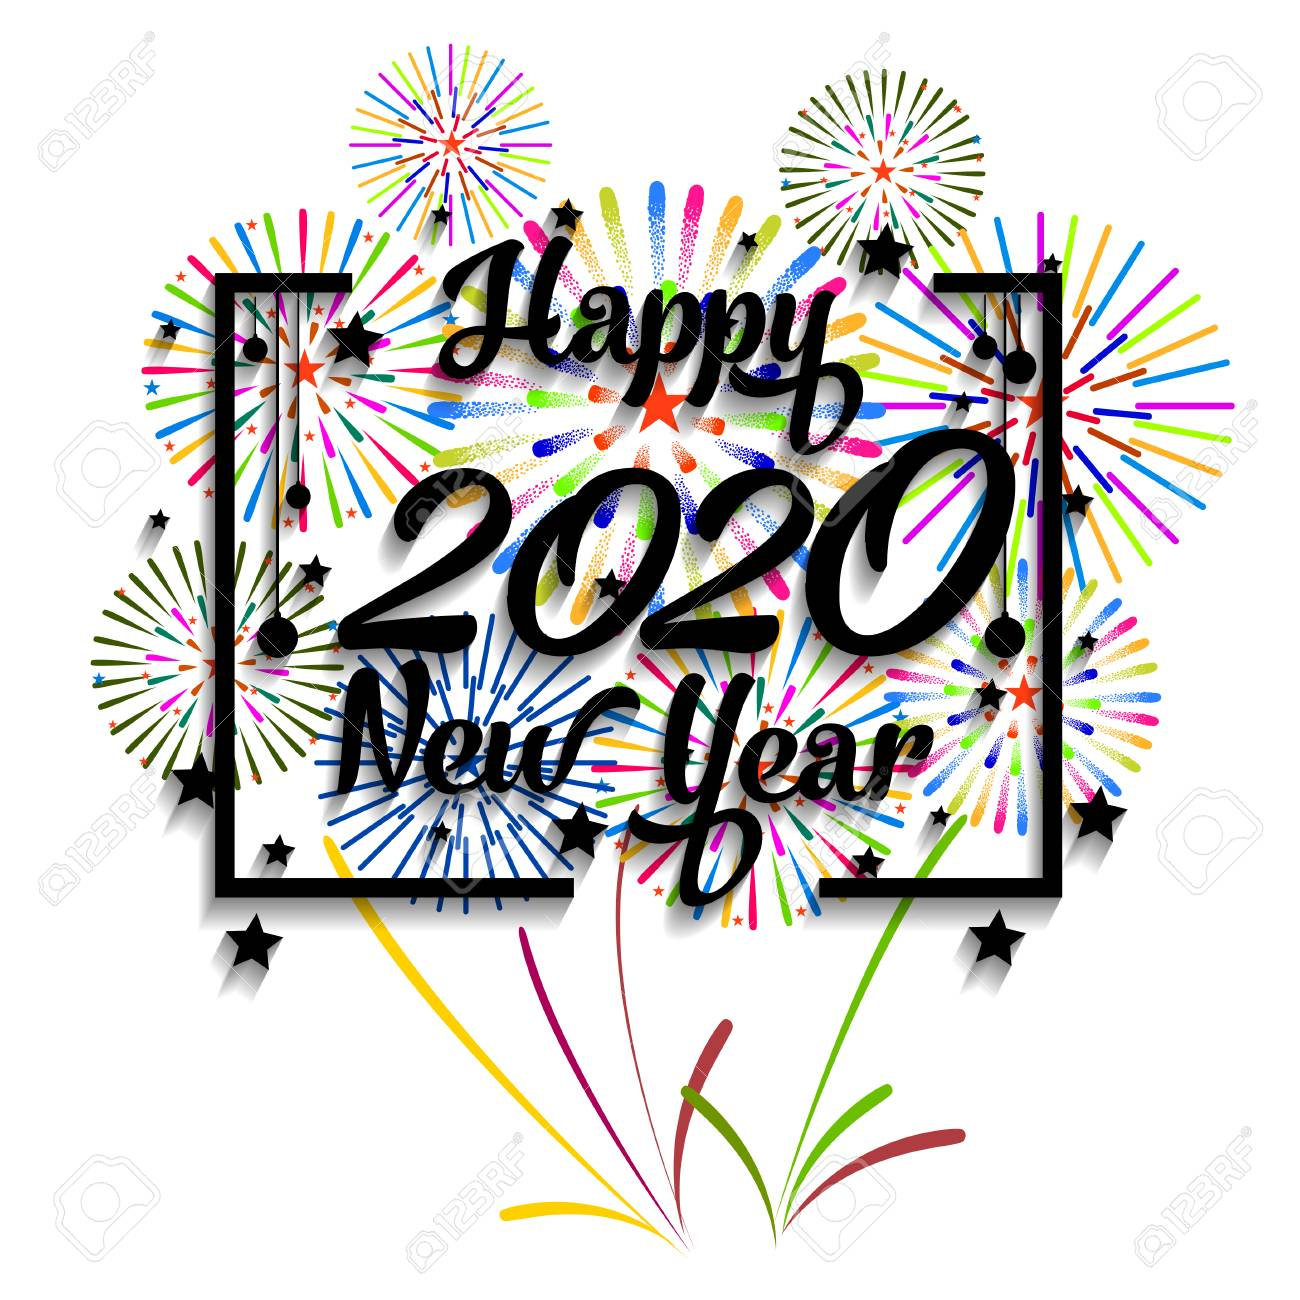 Happy New Year Clipart 2020.Happy New Year 2020 Background With Fireworks